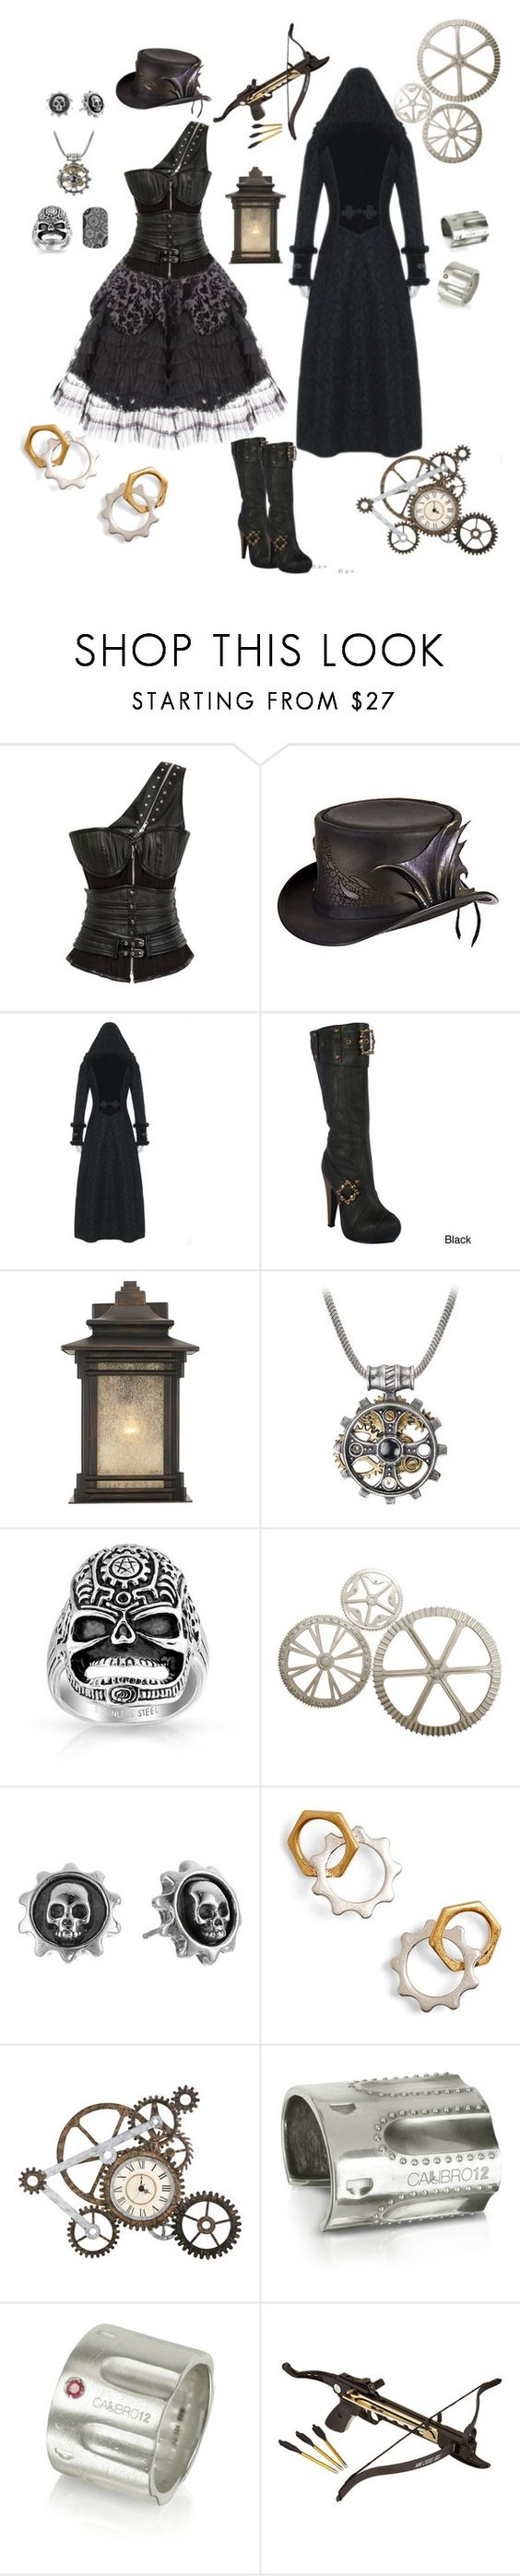 """""""Grinding Grit"""" by karlielove2party ❤ liked on Polyvore featuring Retrò, Overland Sheepskin Co., Ellie, Franklin Iron Works, Bling Jewelry, King Baby Studio, Tory Burch, Upton Home and Calibro 12"""